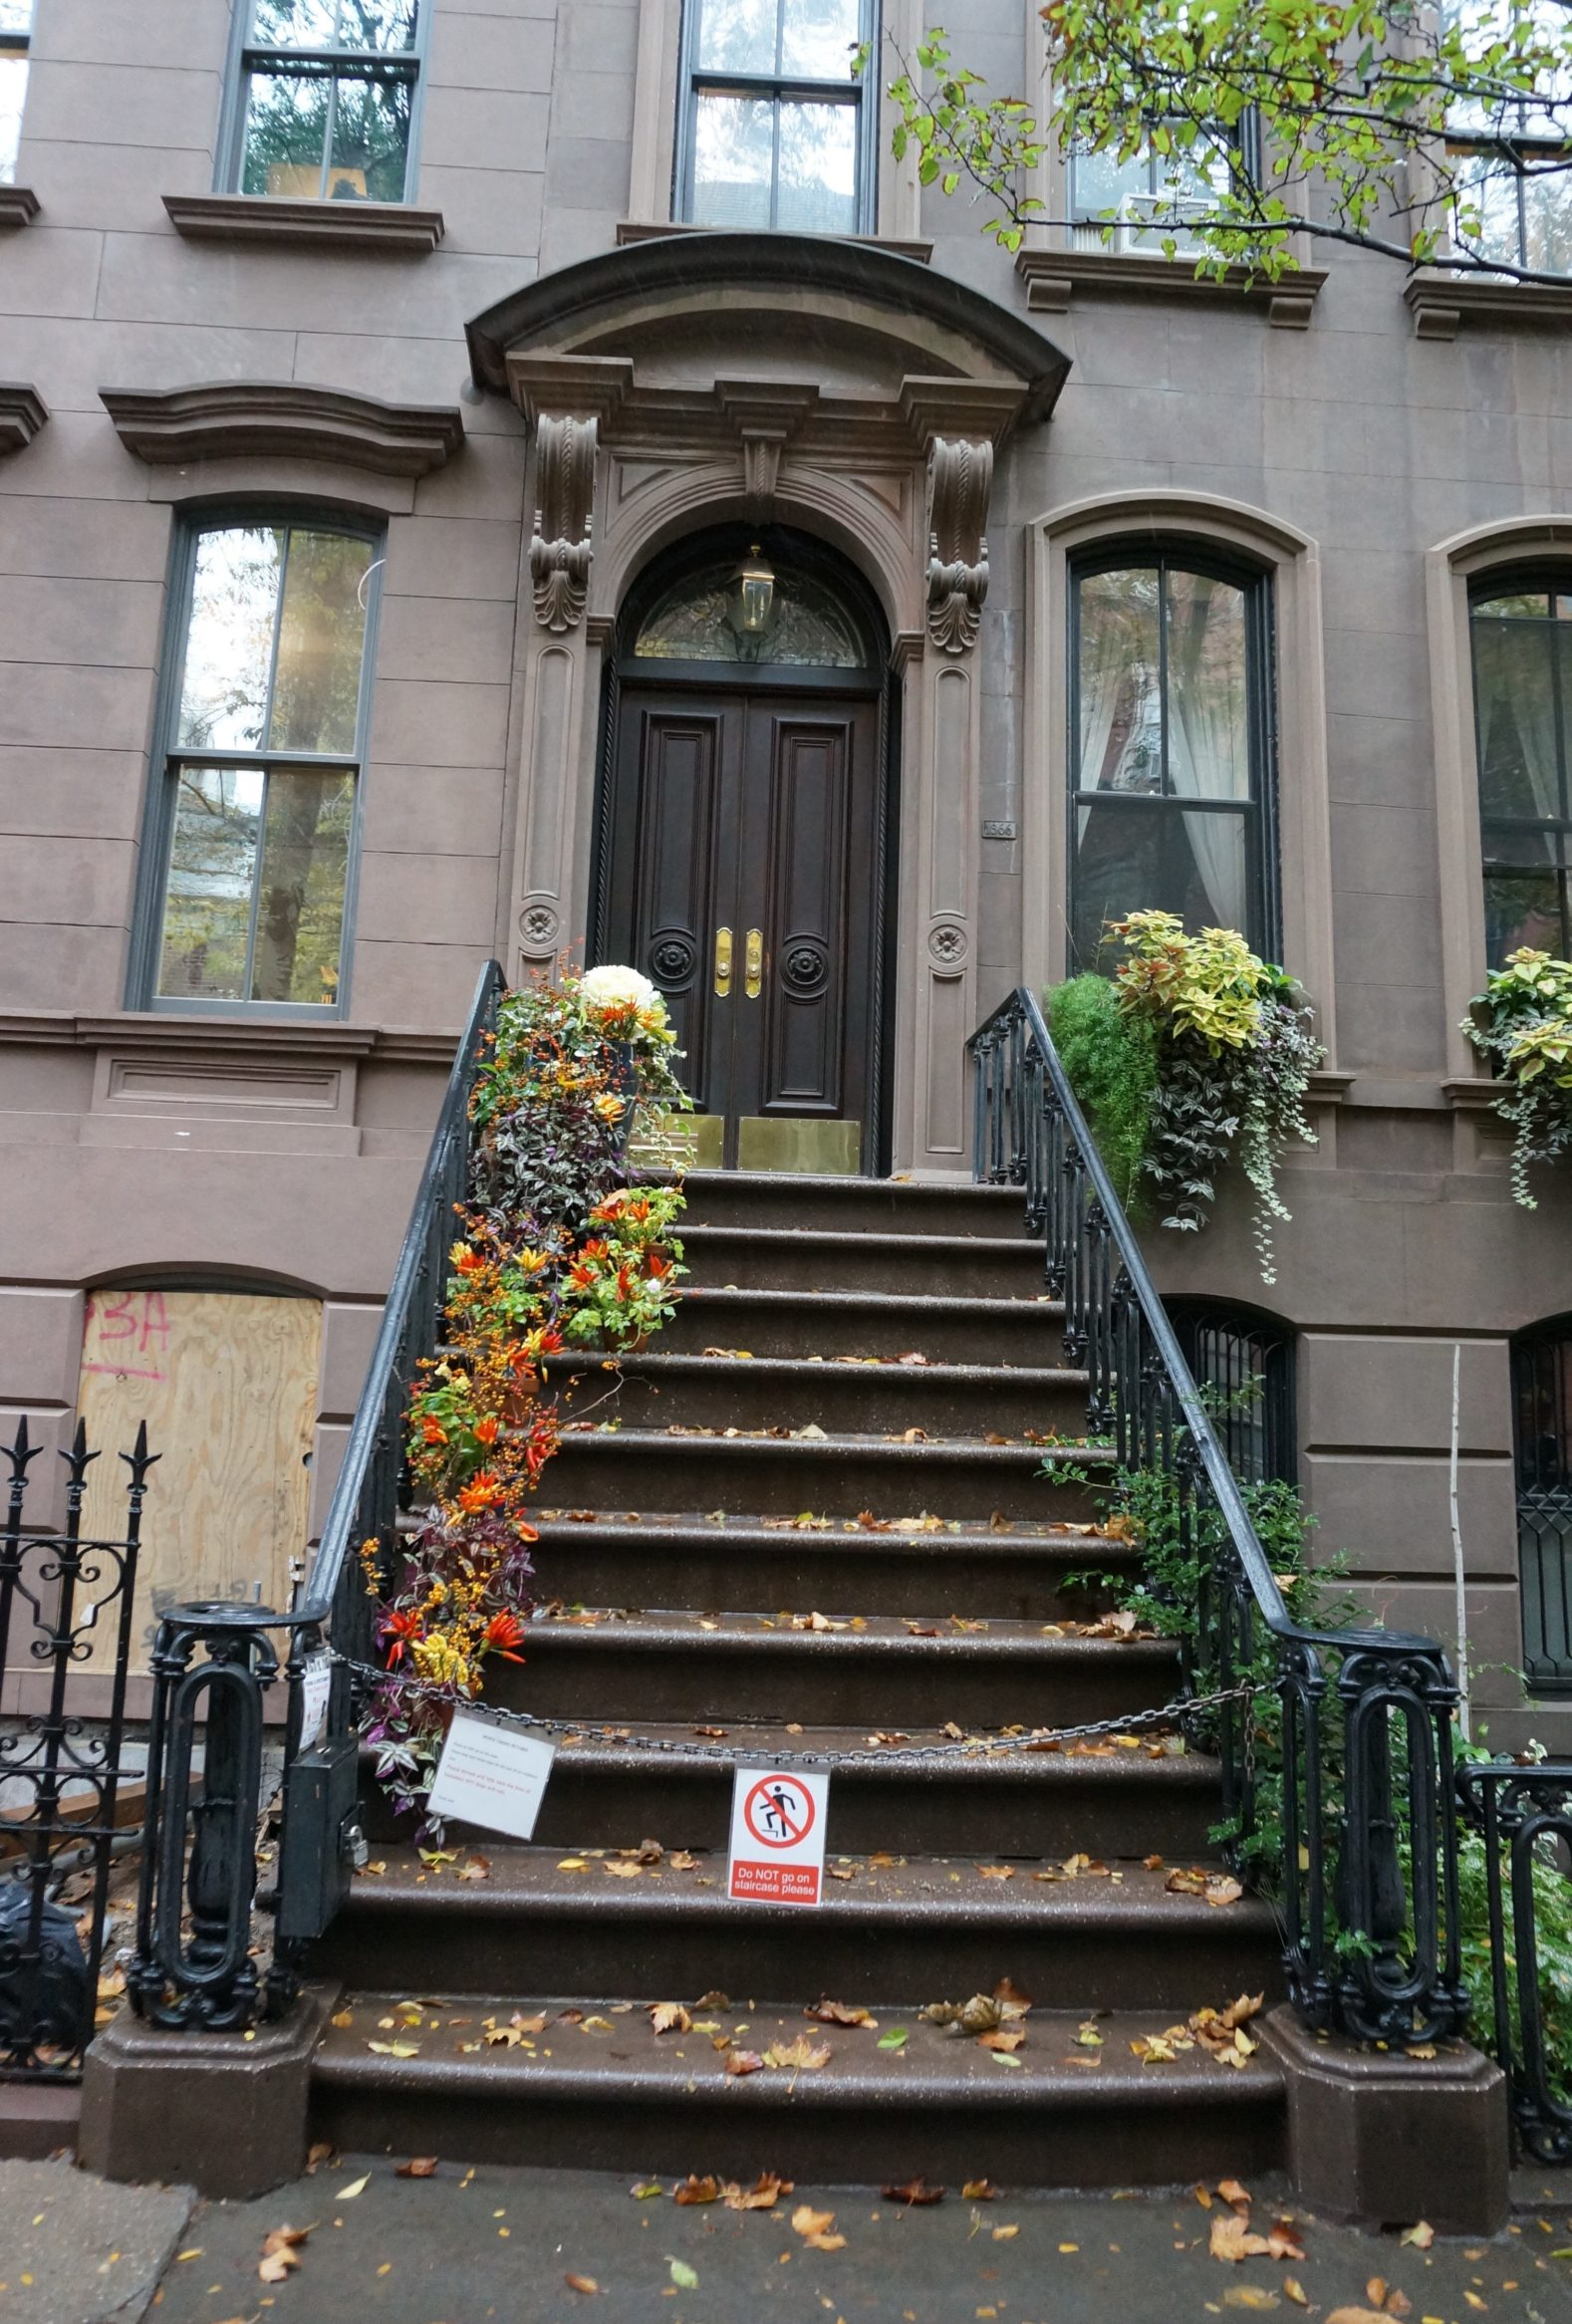 Clich The Day Street Where Carrie Bradshaw Lives New York